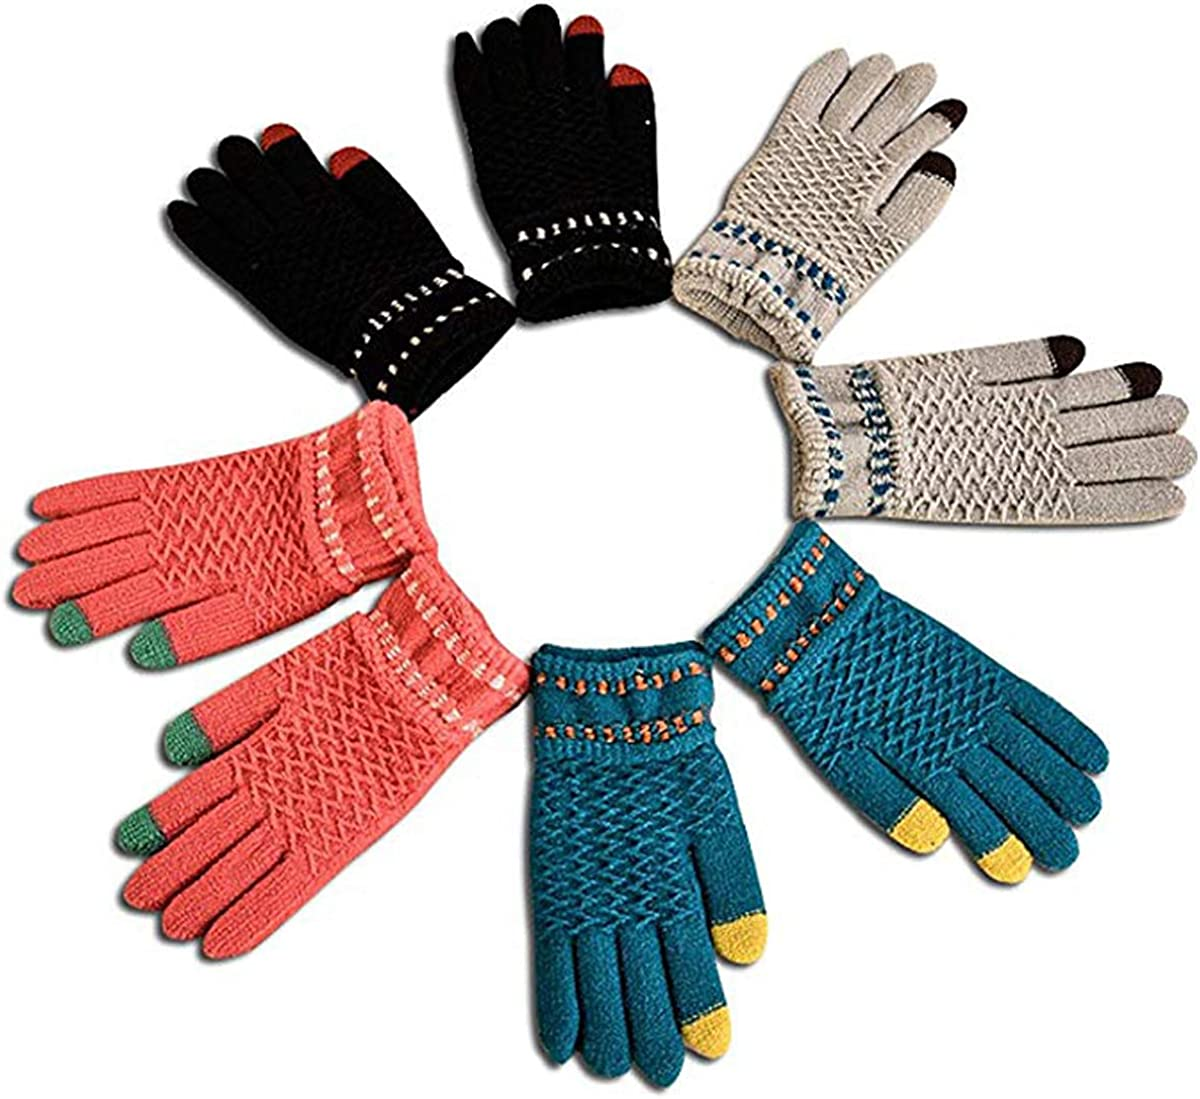 TraderPlus 4 Pairs Winter Knit Gloves Touchscreen Mittens for Women Men